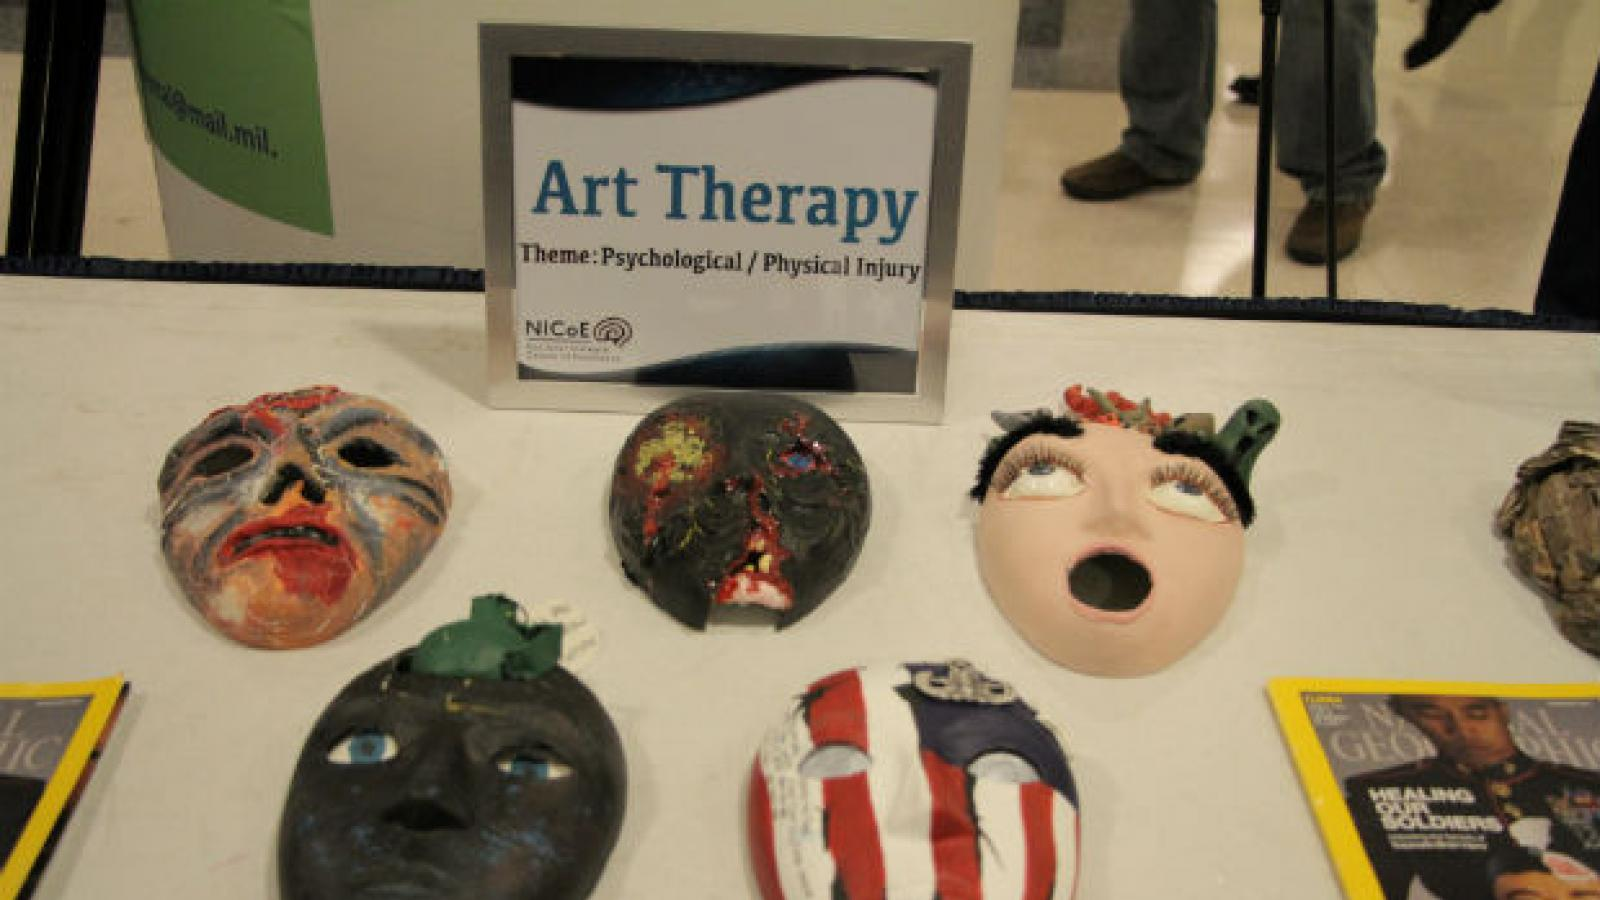 theater masks created by service members on display table